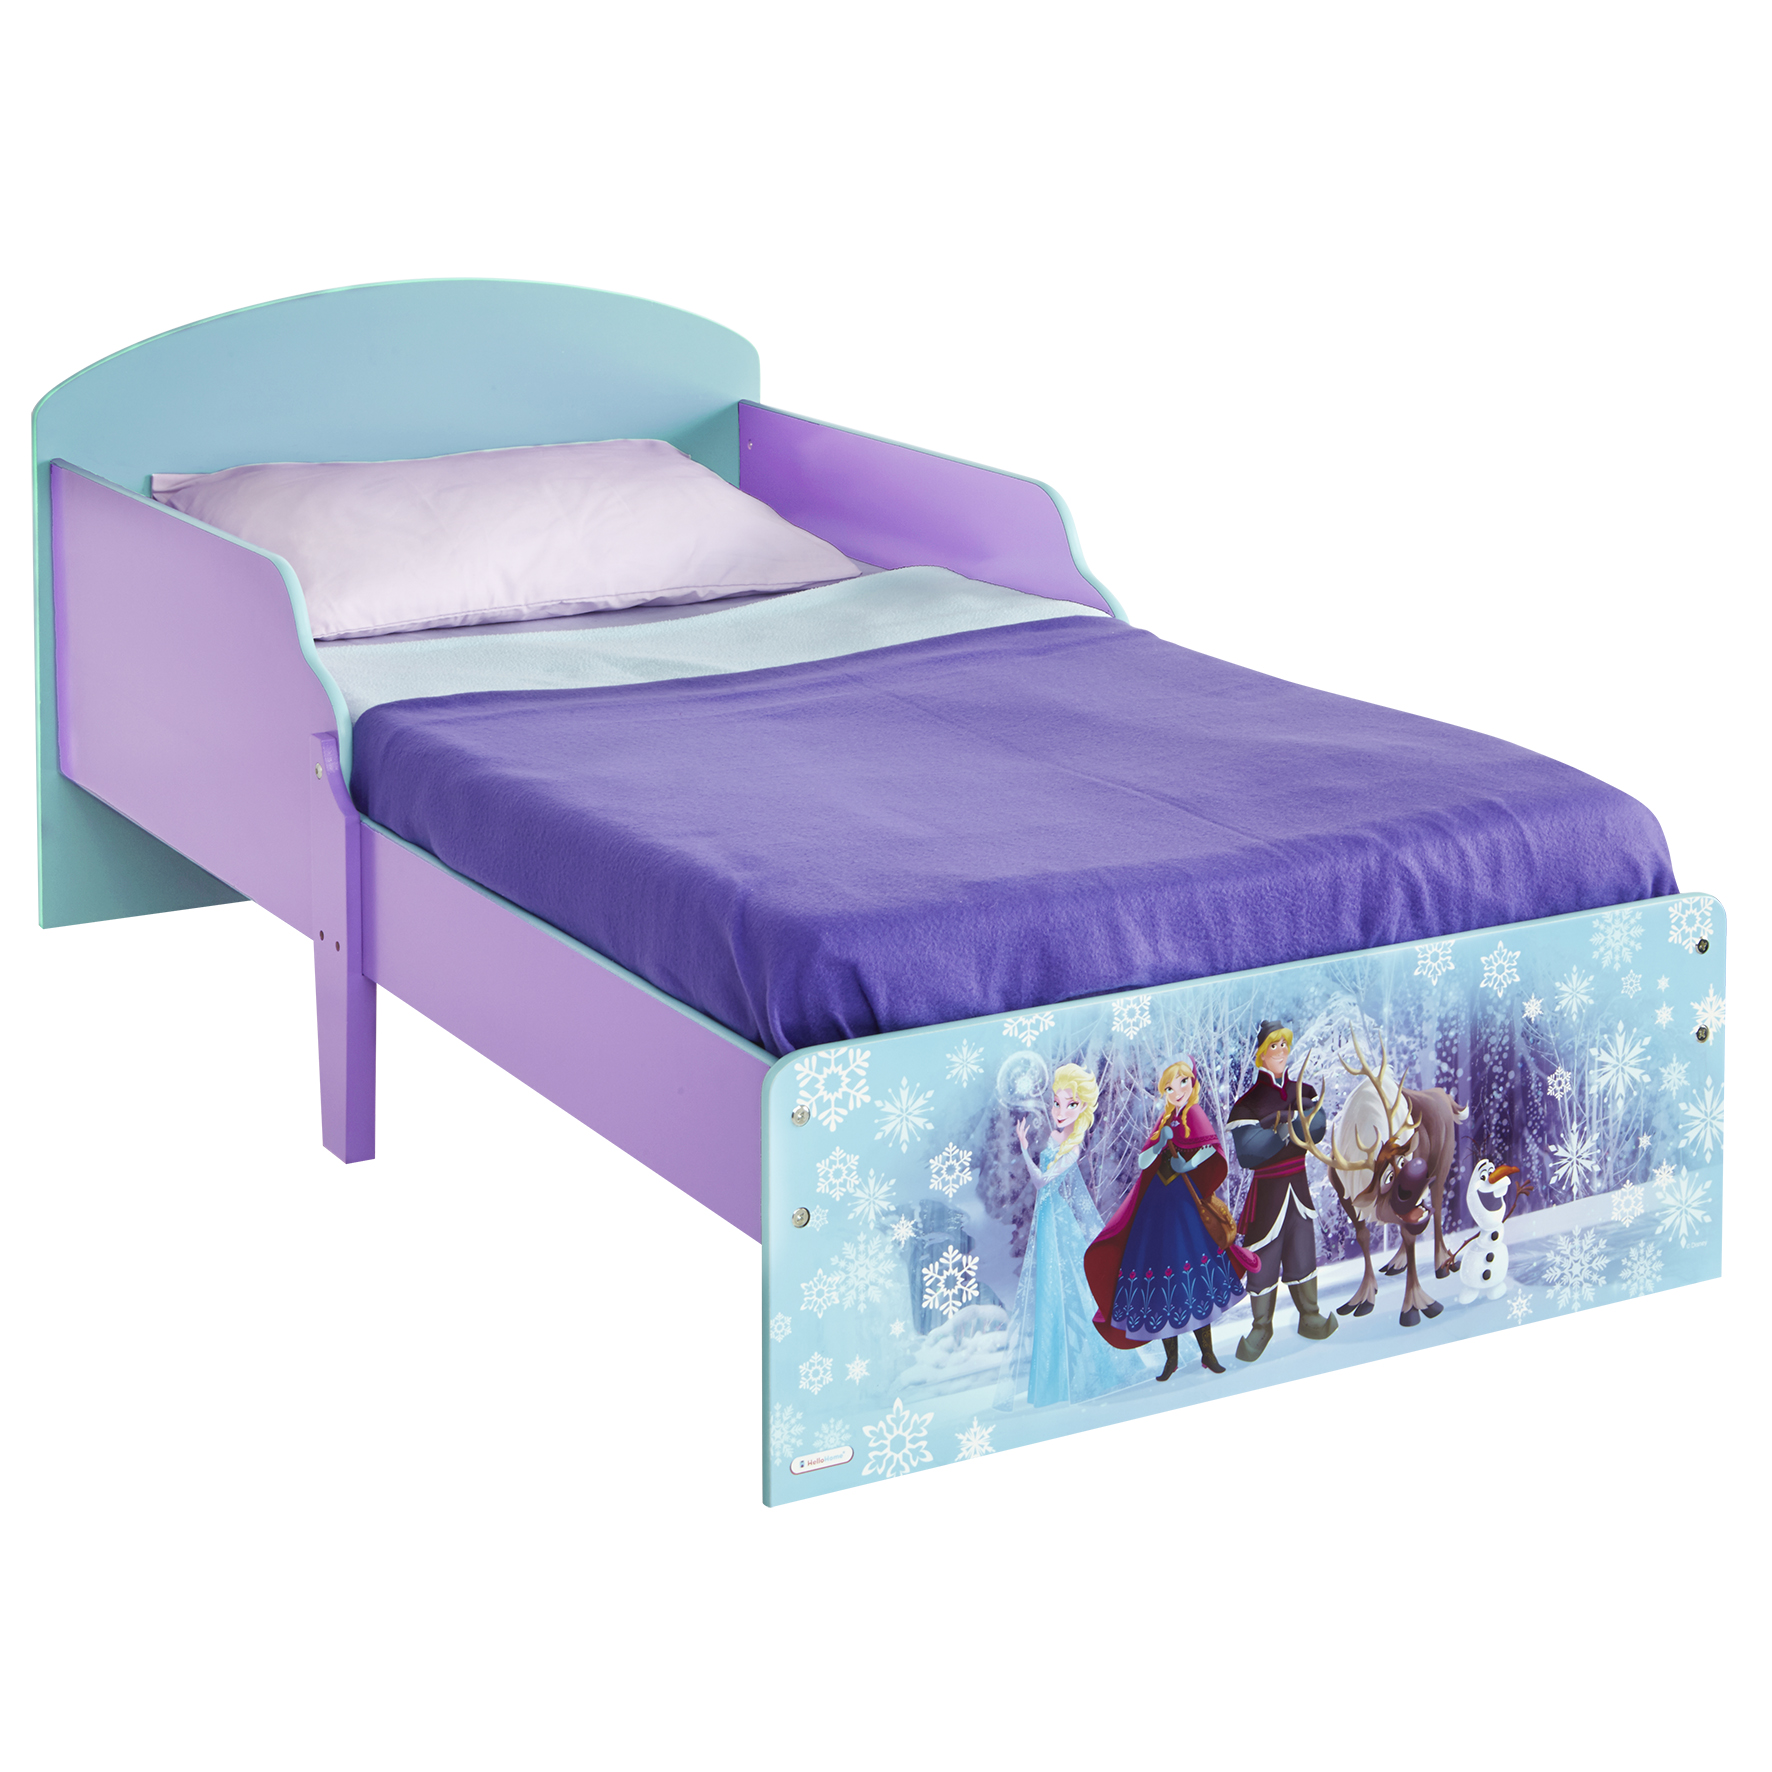 La collection reine des neiges for Photo de lit pour fille